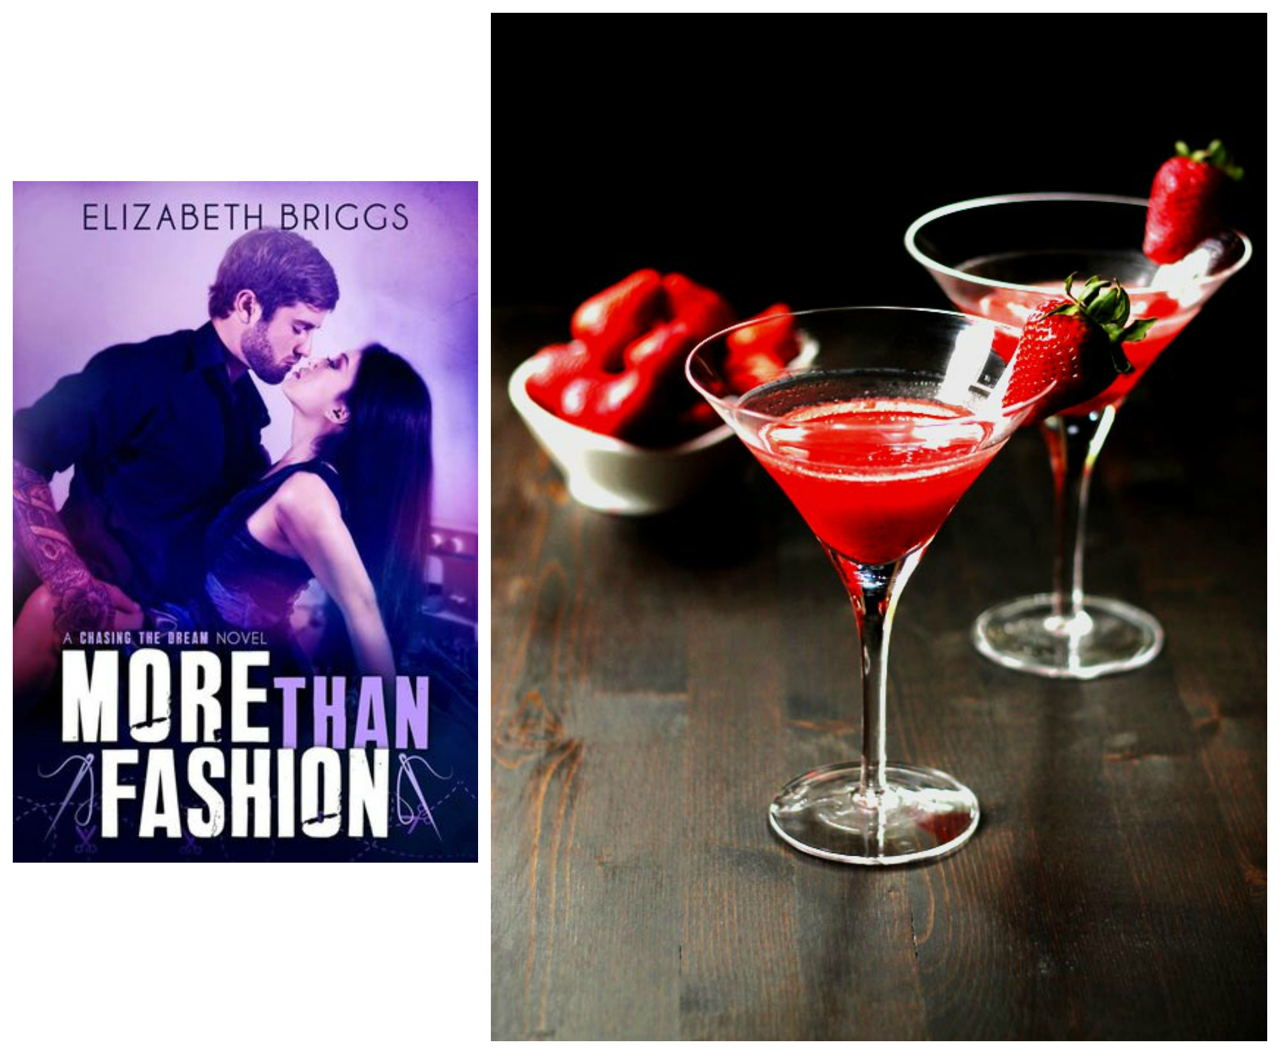 MORE THAN FASHION by Elizabeth Briggs and Strawberry Martini Recipe from CookswithCocktails // www.bridgidgallagher.com